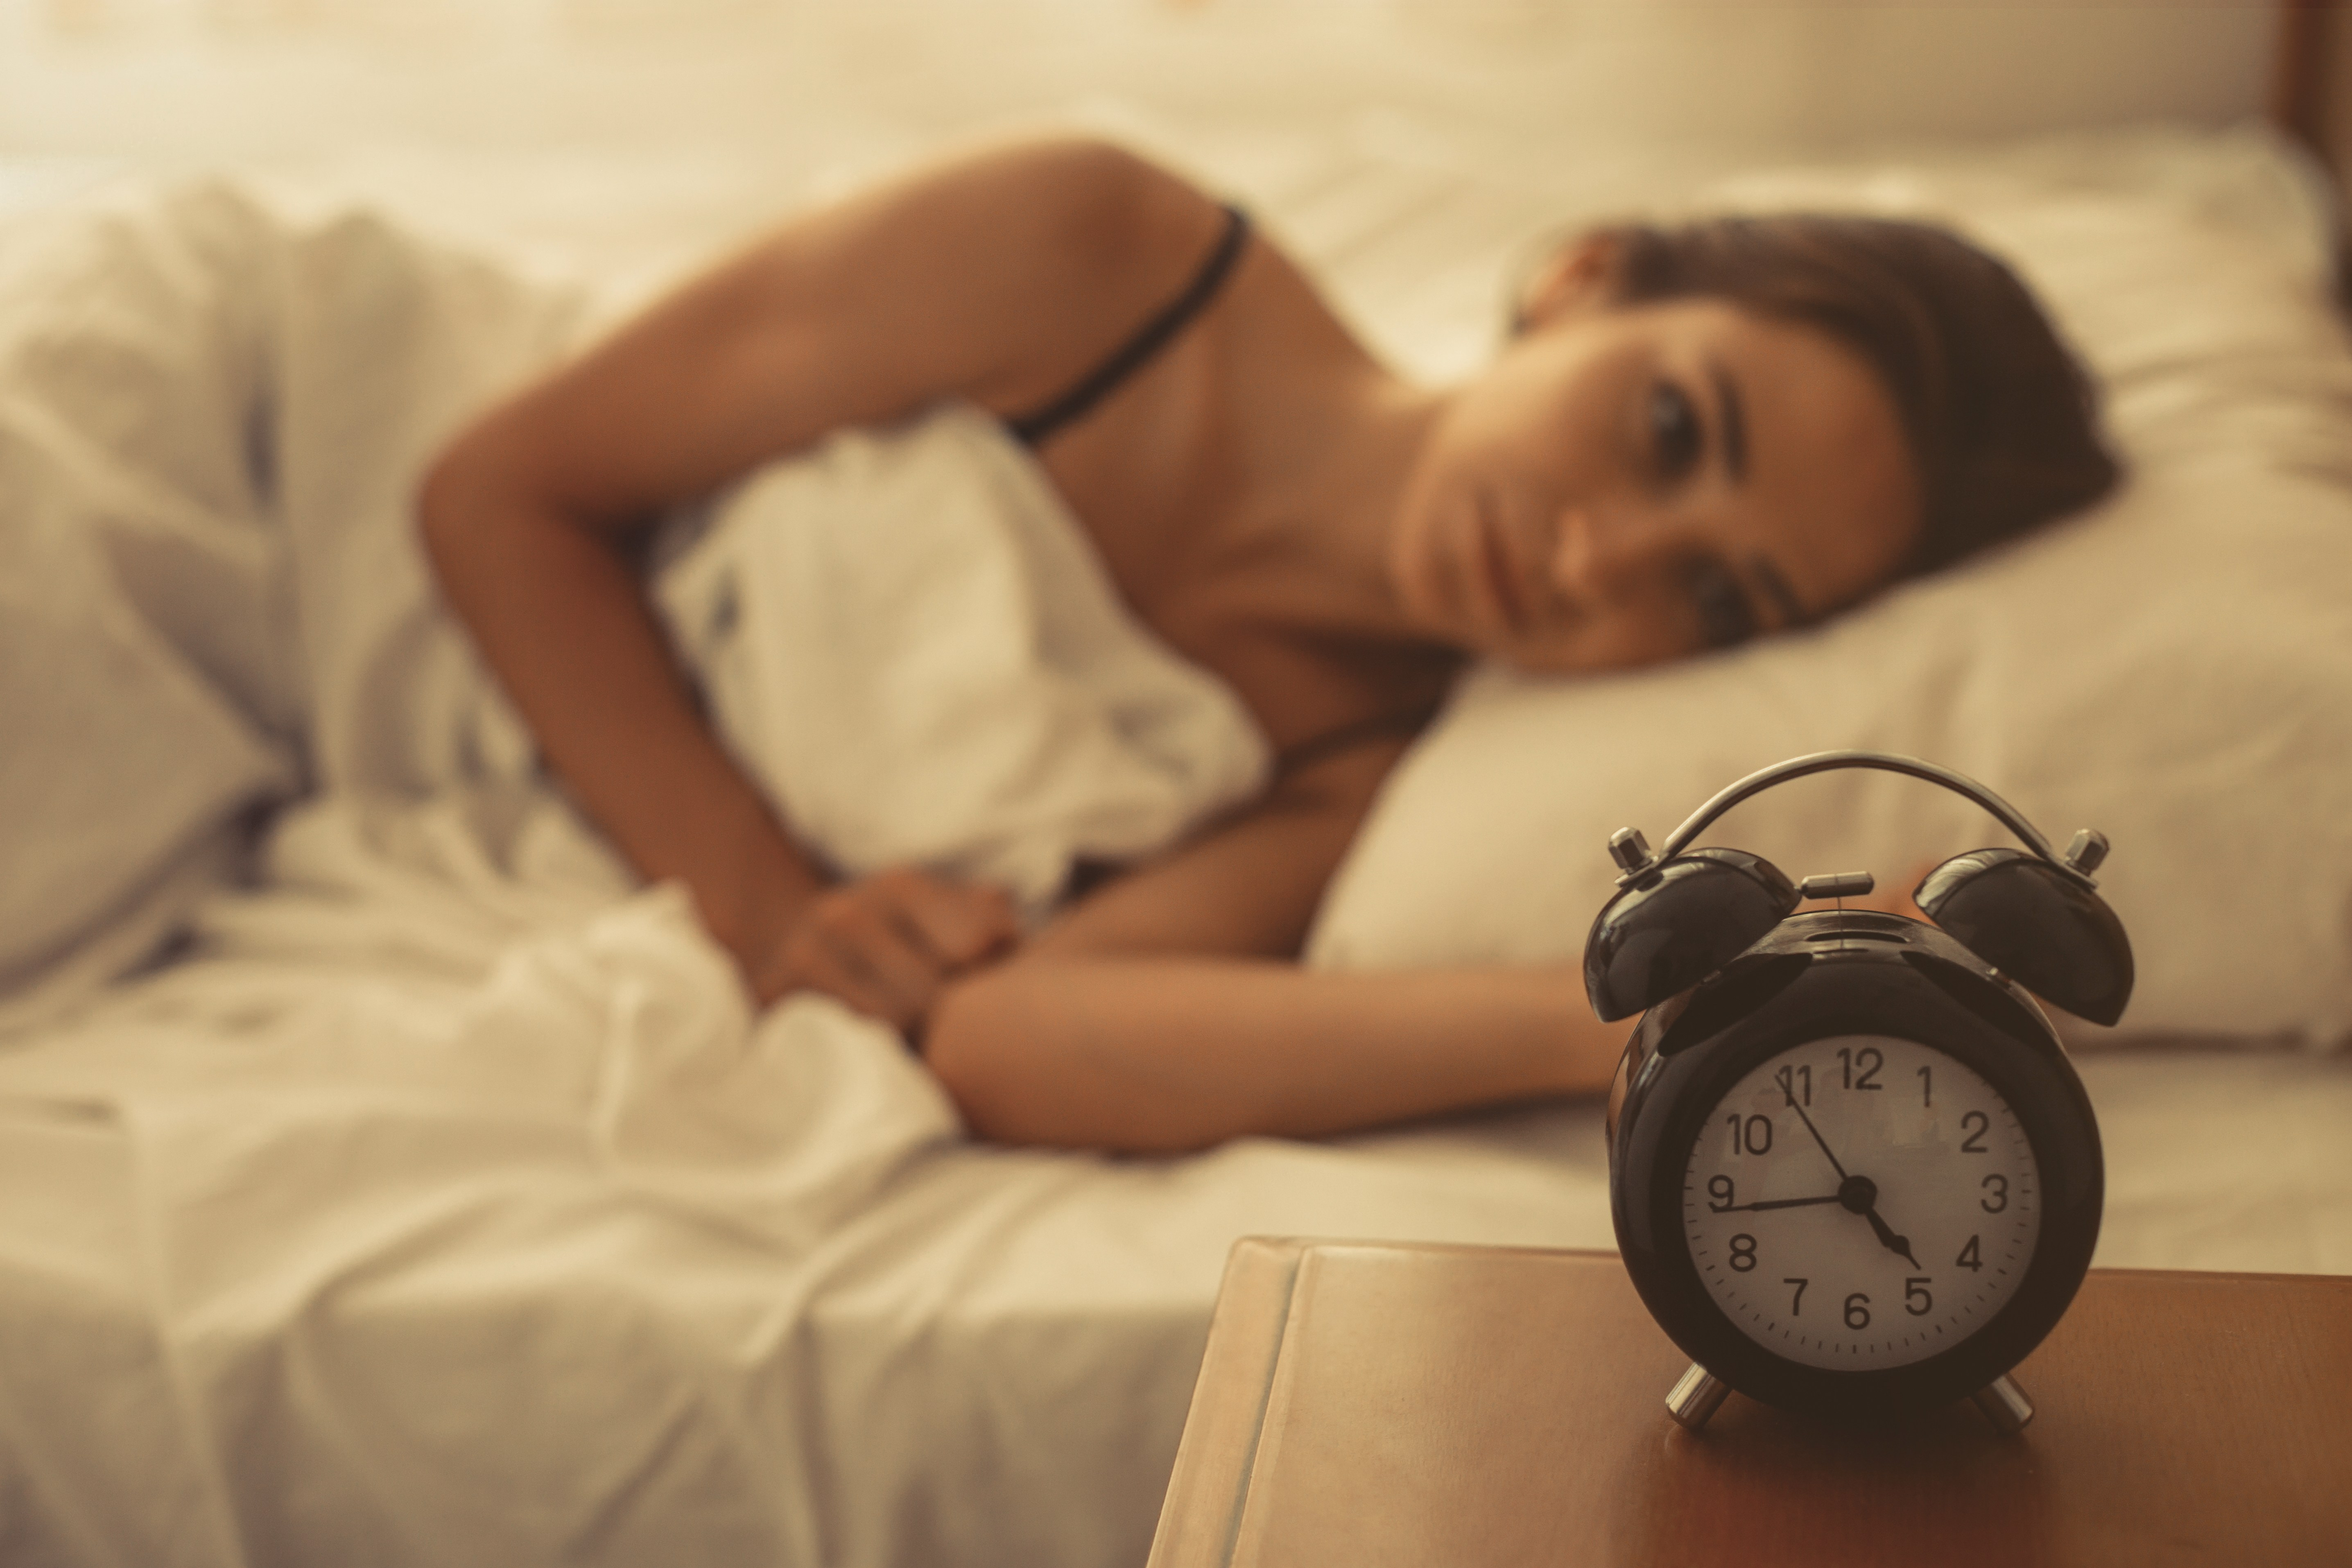 Trouble sleeping? These tricks might help.